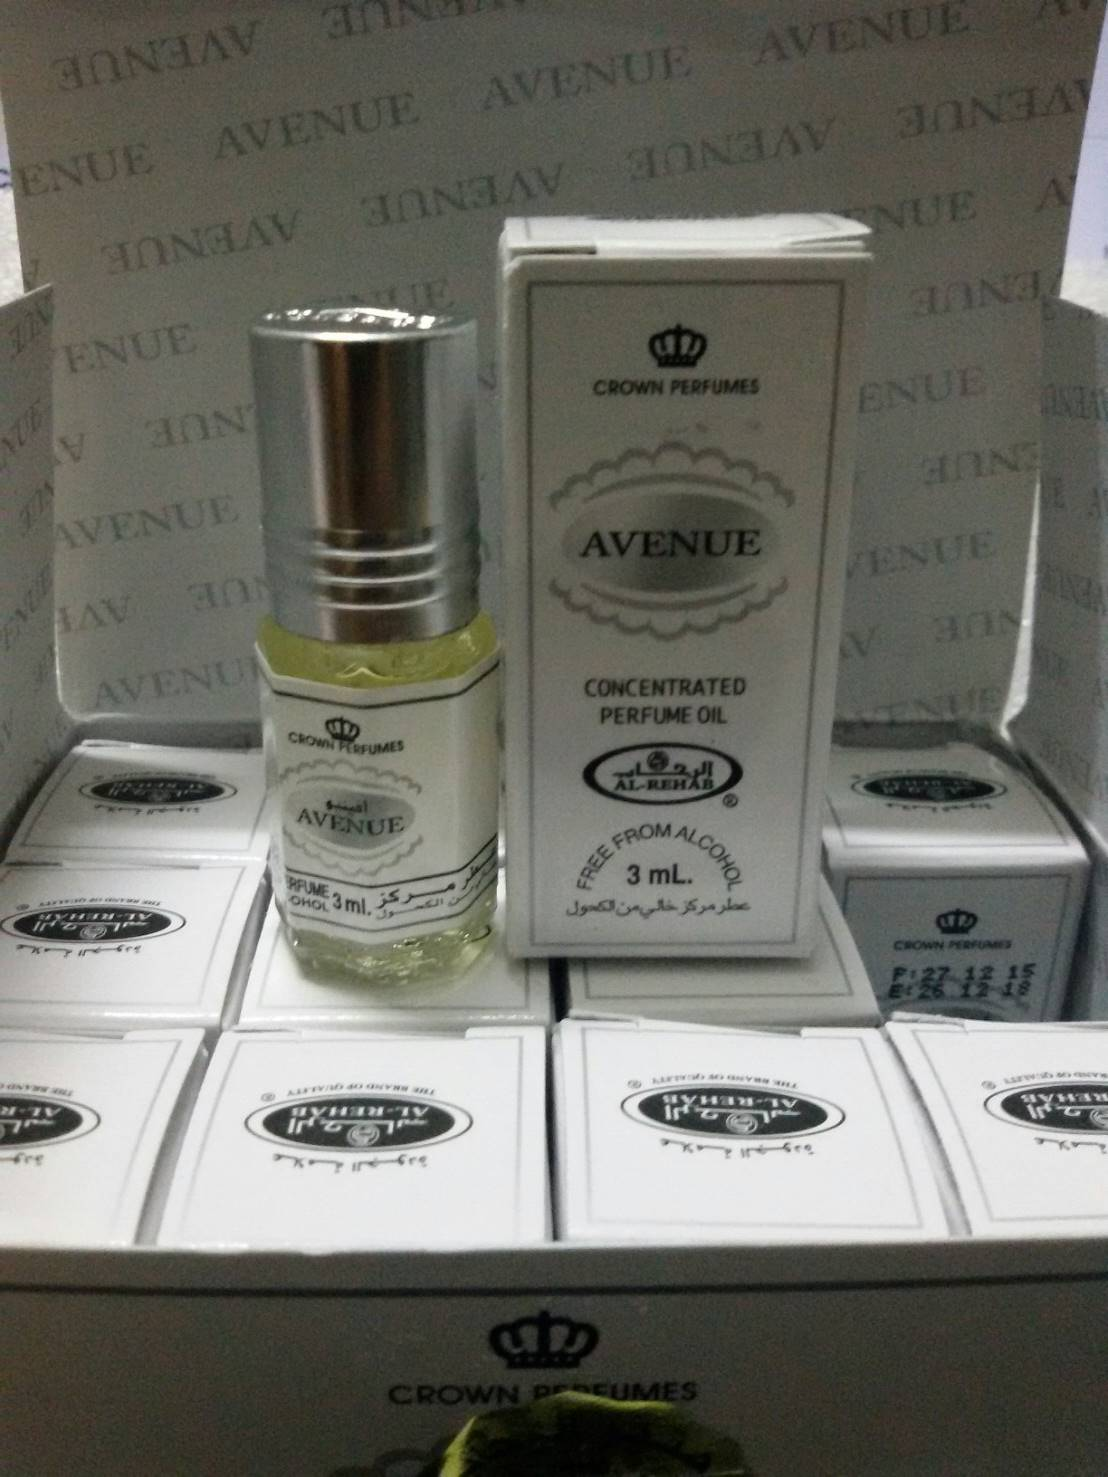 น้ำหอม Avenue by Al Rehab Concentrated Perfume Oil 3ml.